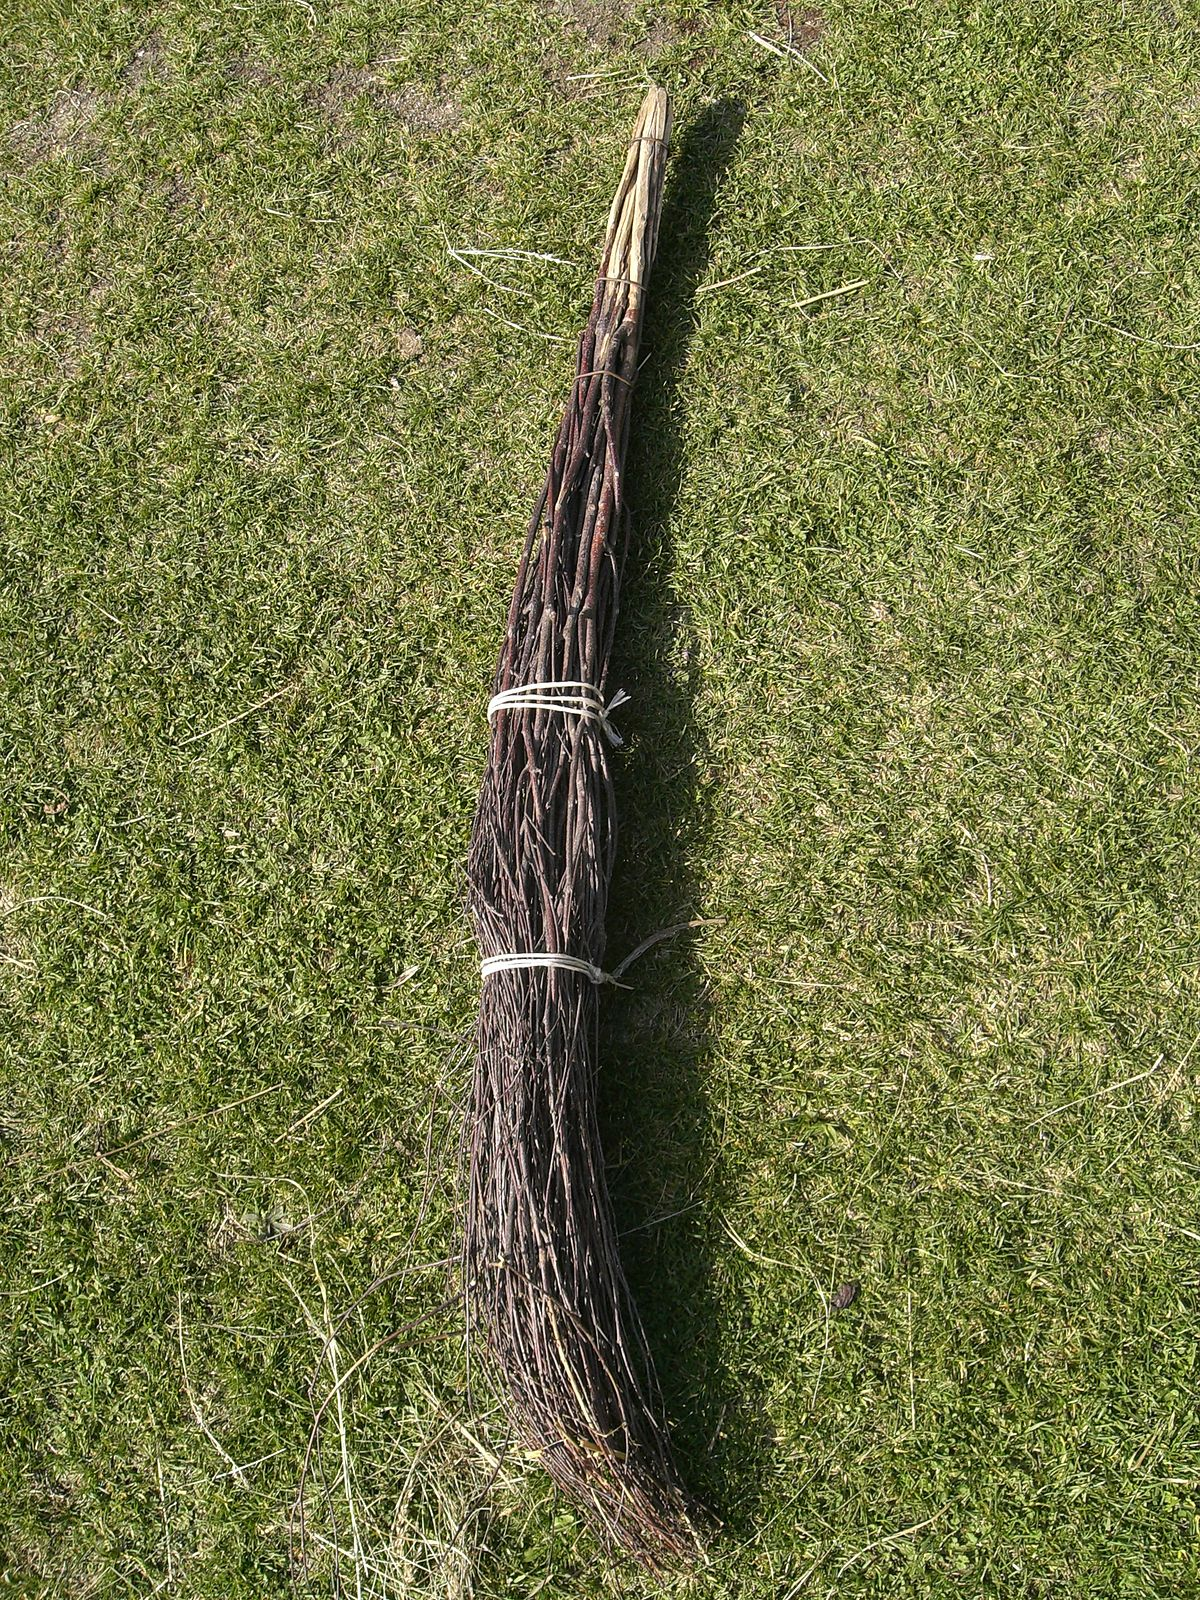 Broom - Simple English Wikipedia, the free encyclopedia